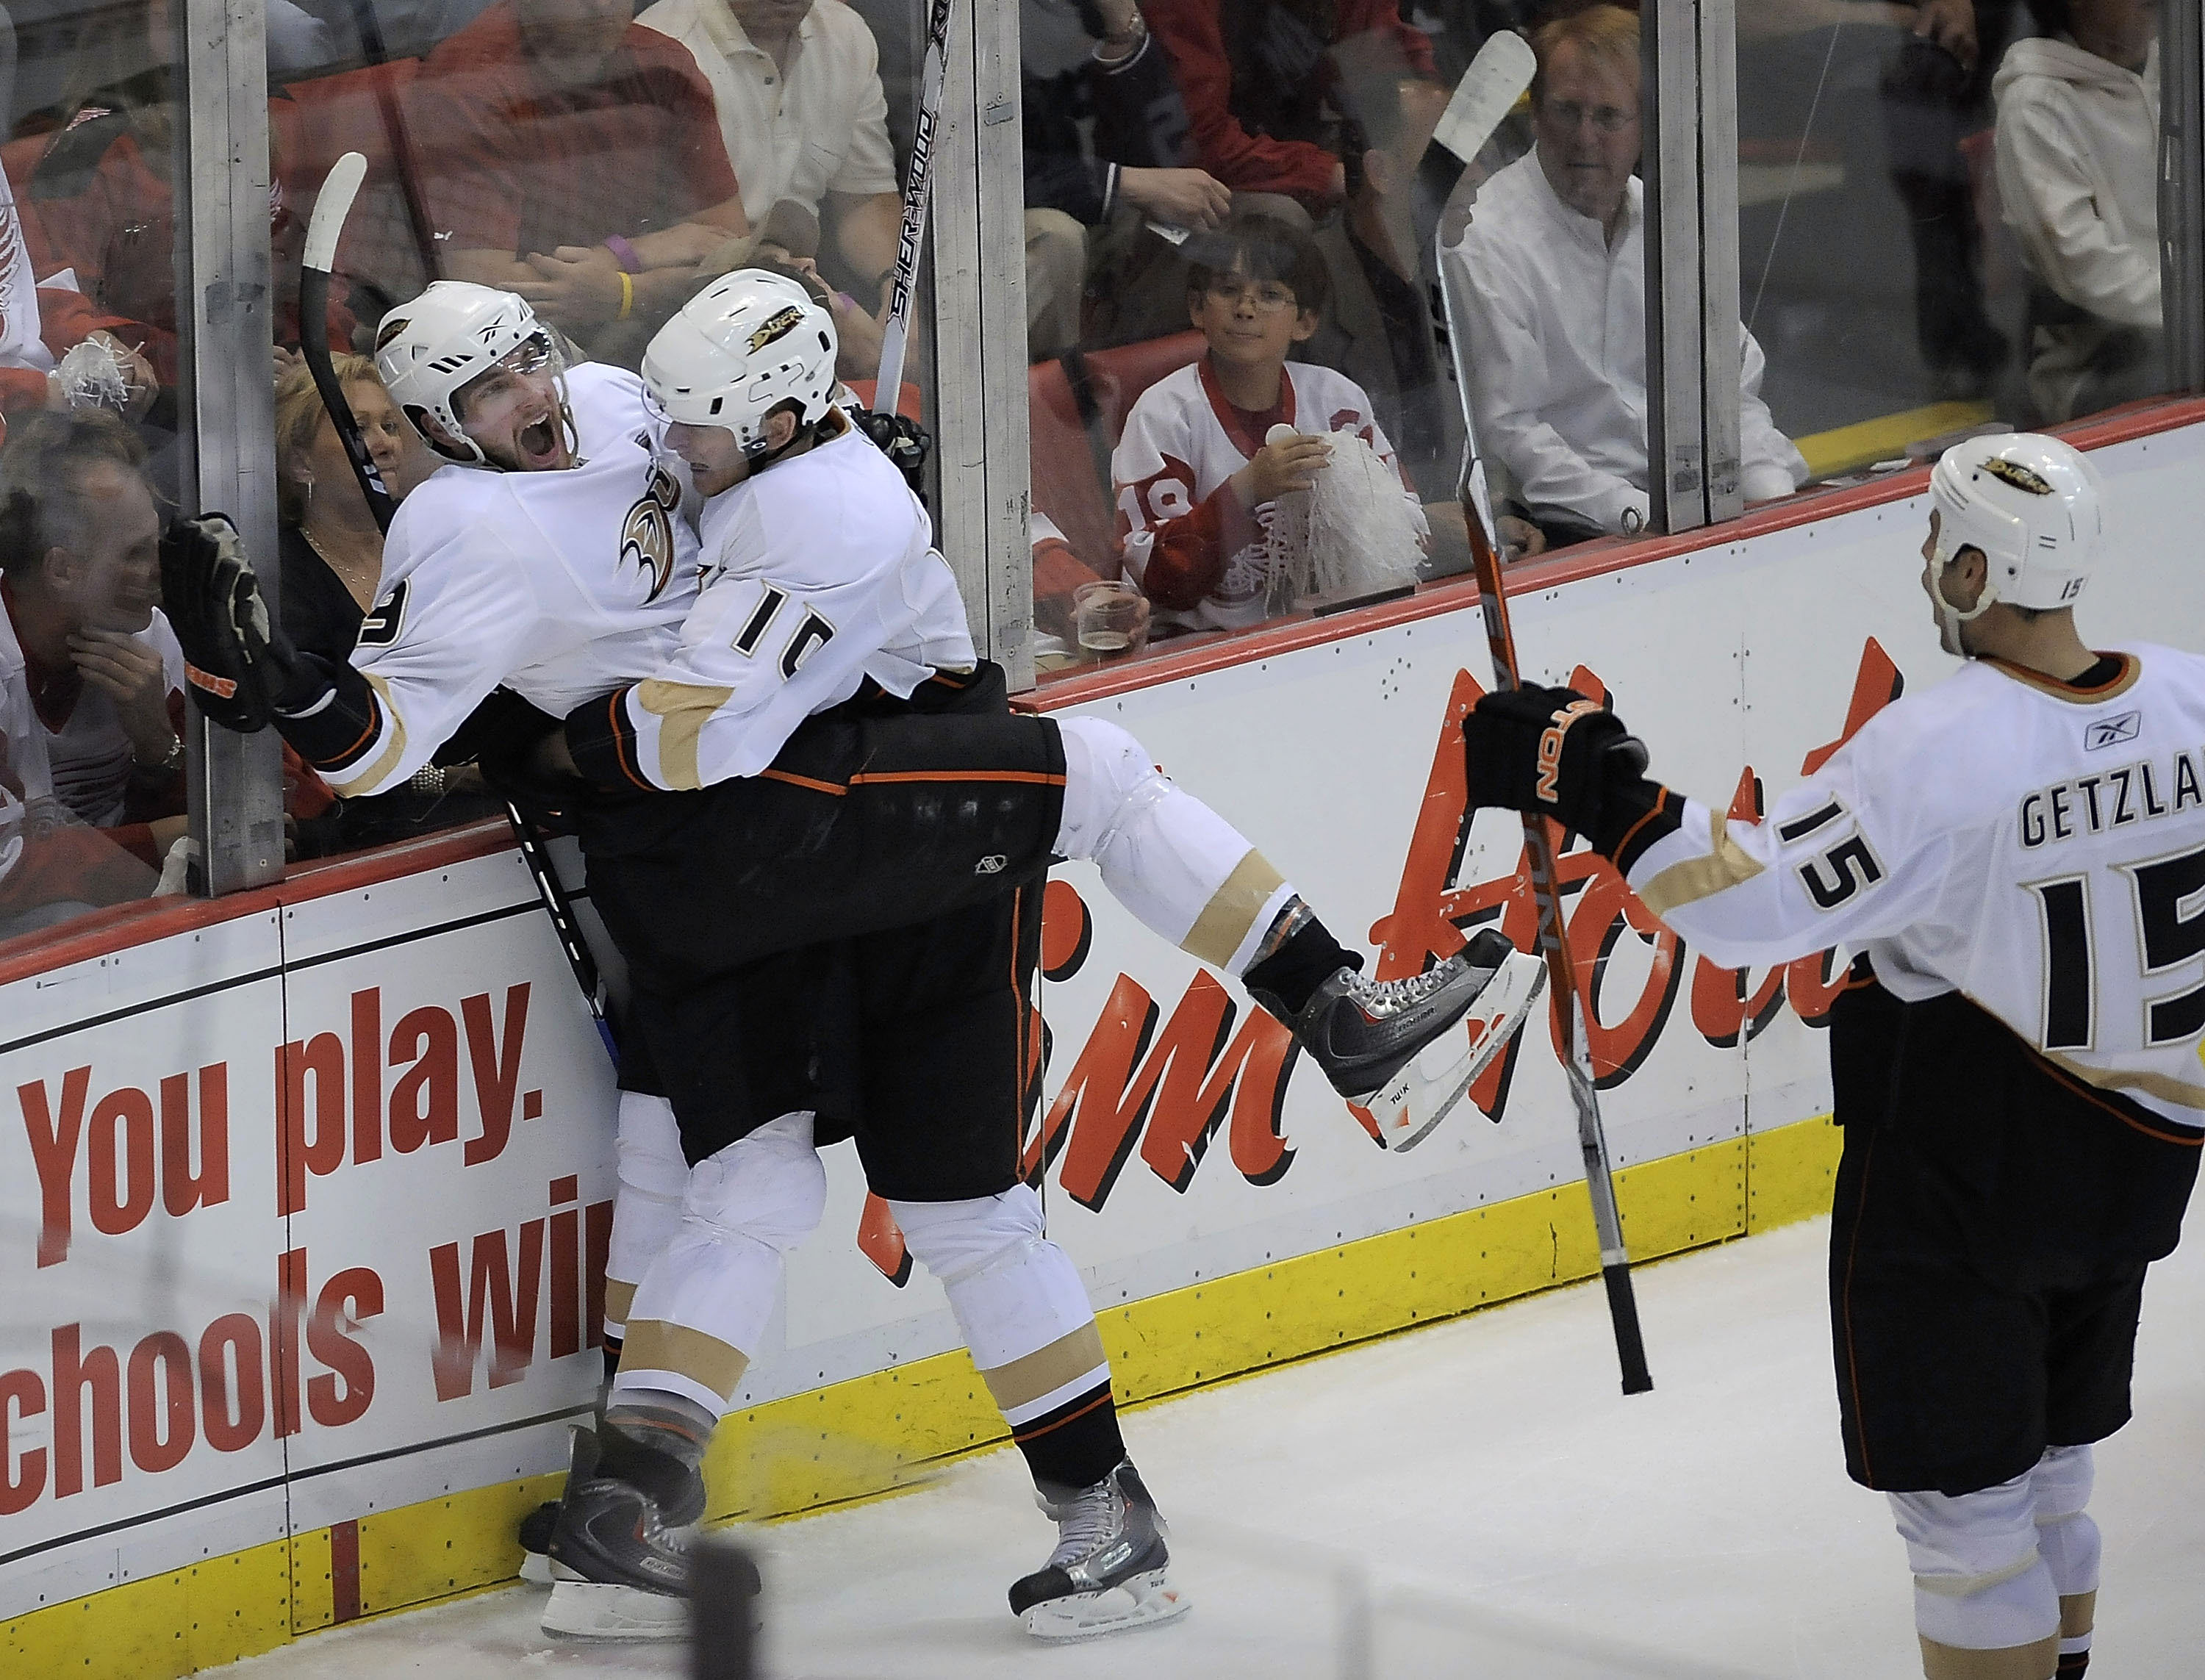 DETROIT - MAY 14: Bobby Ryan #9 of the Anaheim Ducks celebrates his third period goal with Corey Perry #10 and Ryan Getzlaf #15 while playing the Detroit Red Wings in Game Seven of the Western Conference Semifinals of the 2009 NHL Stanley Cup Playoffs on